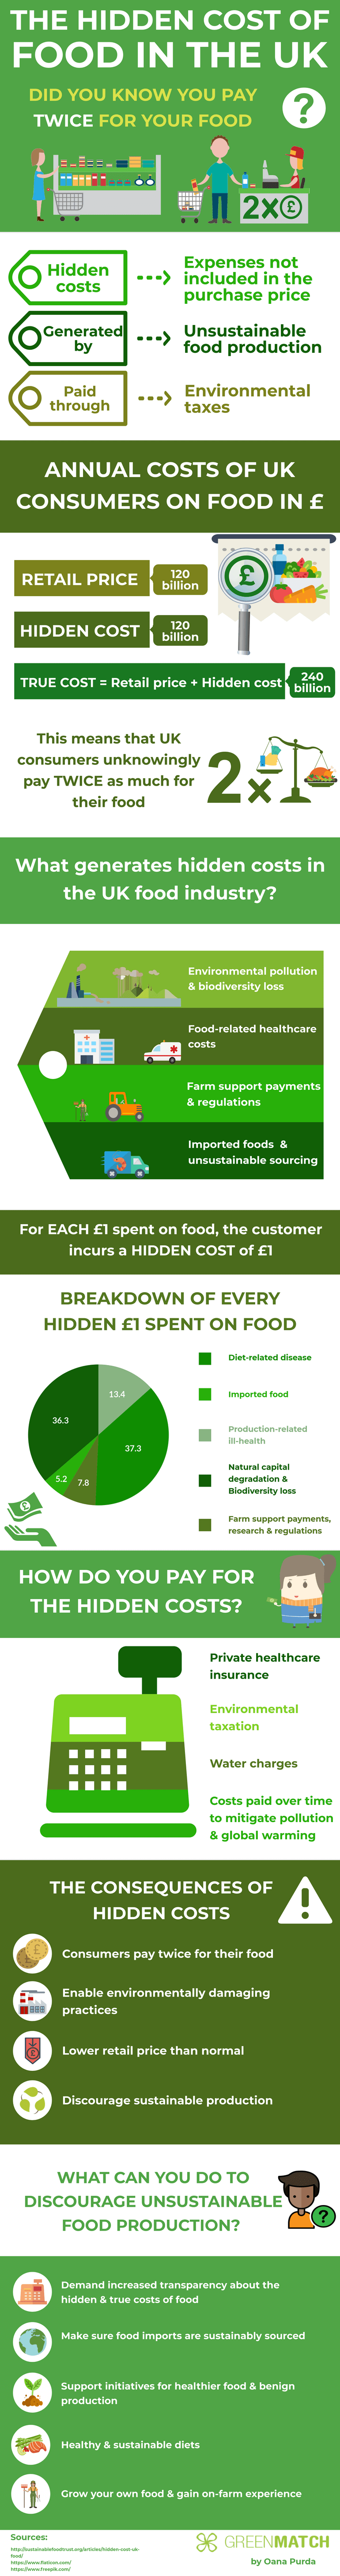 The Hidden Cost of Food in the UK